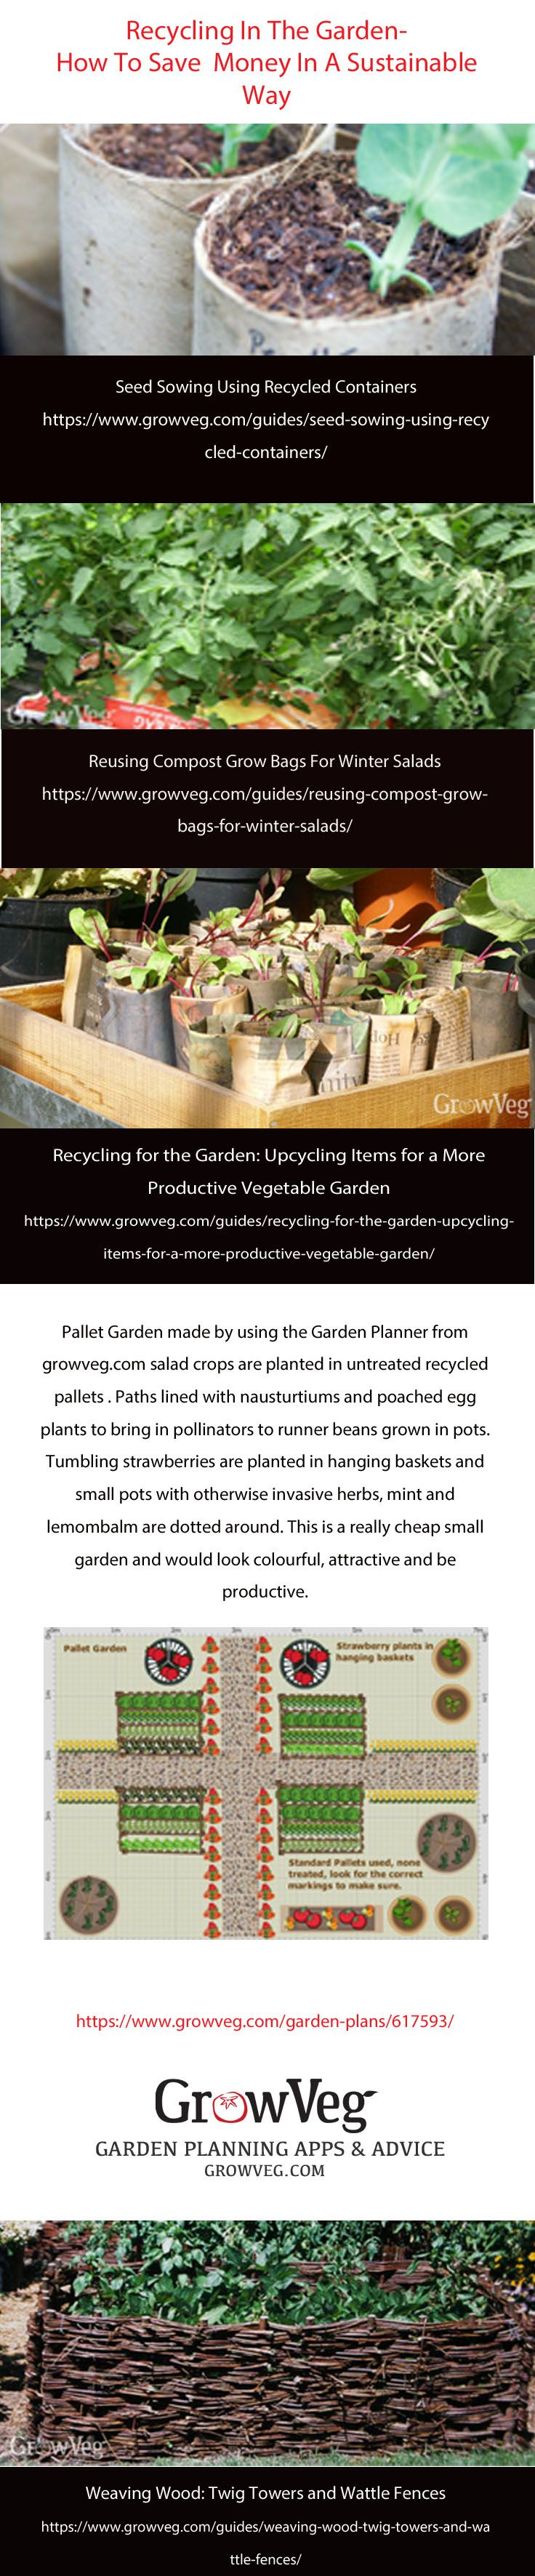 Recycling in the garden, how to save money by reusing every day throw away items and how to grow more whilst using them in a different way. How to make your own biodegradable pots, how to grow salads in old compost bags, a  plan and links for your own pallet garden and many other tips and tricks to get the most out of this gardening year without buying new.